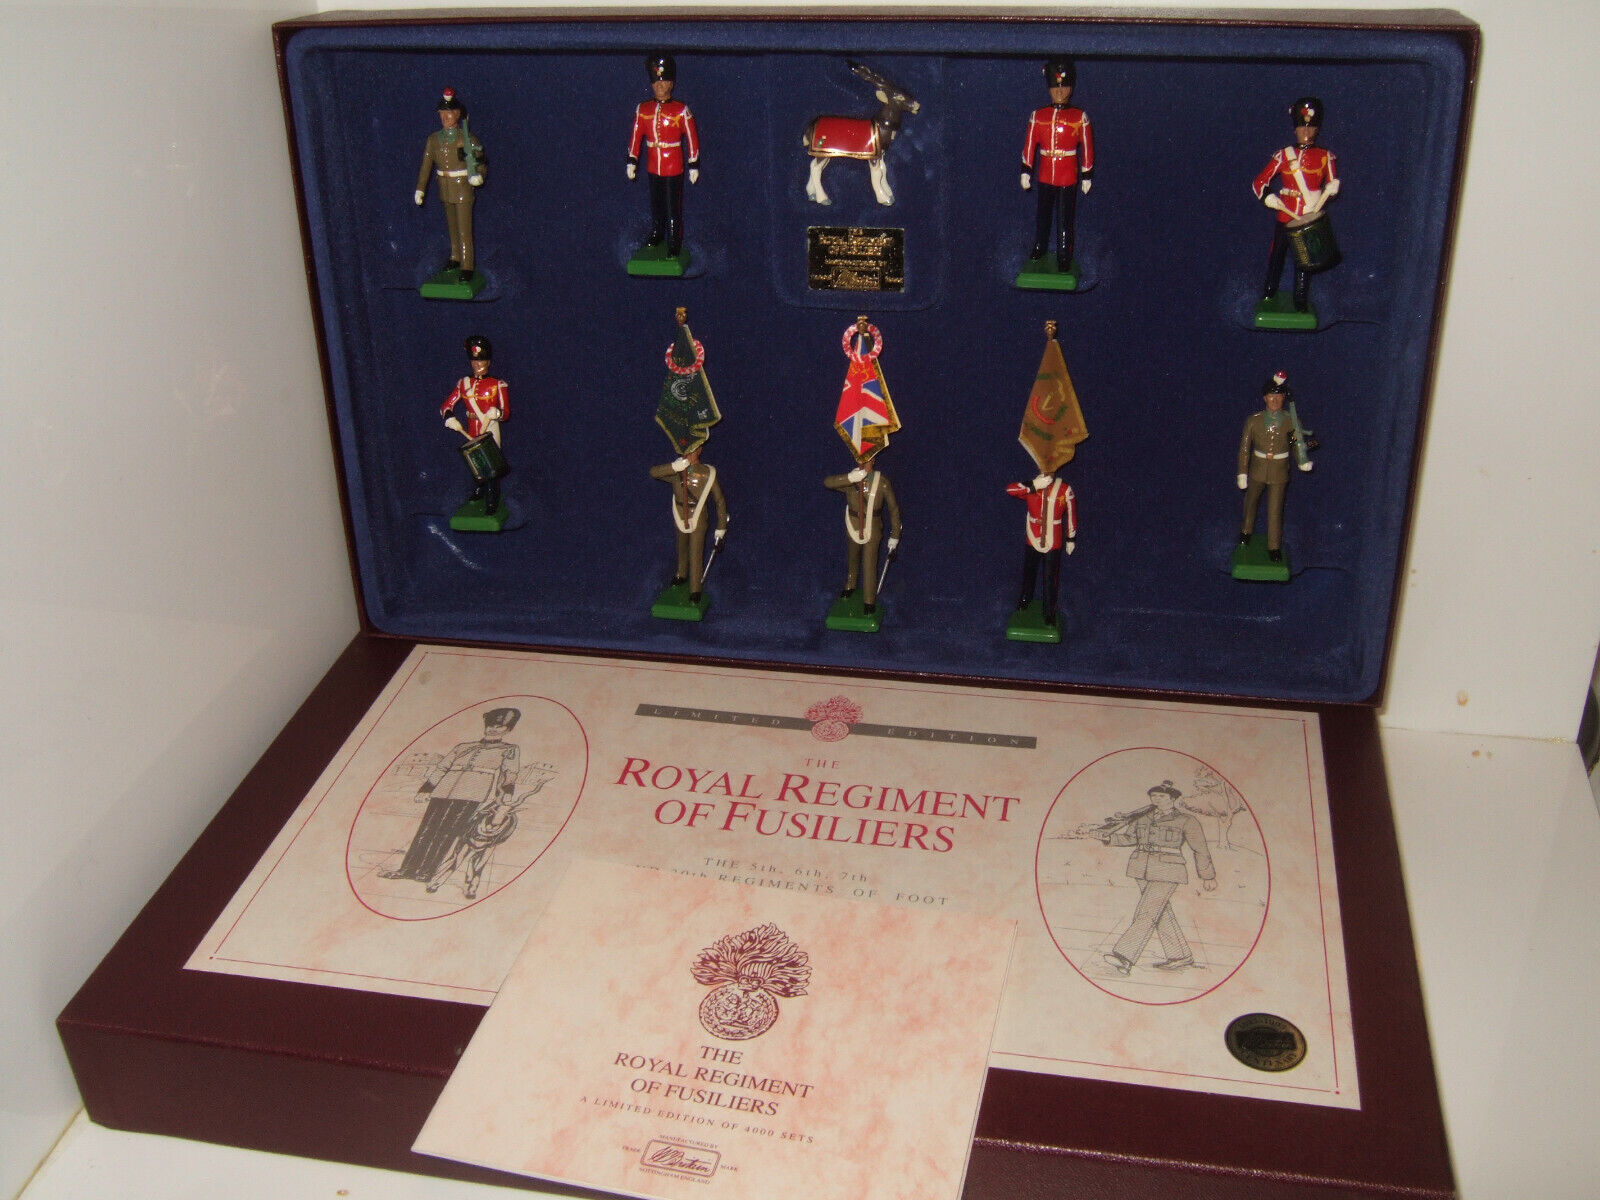 Ltd Britains Set 5193, The Royal Regiment of Fusiliers 10 Piece in Fitted Box.